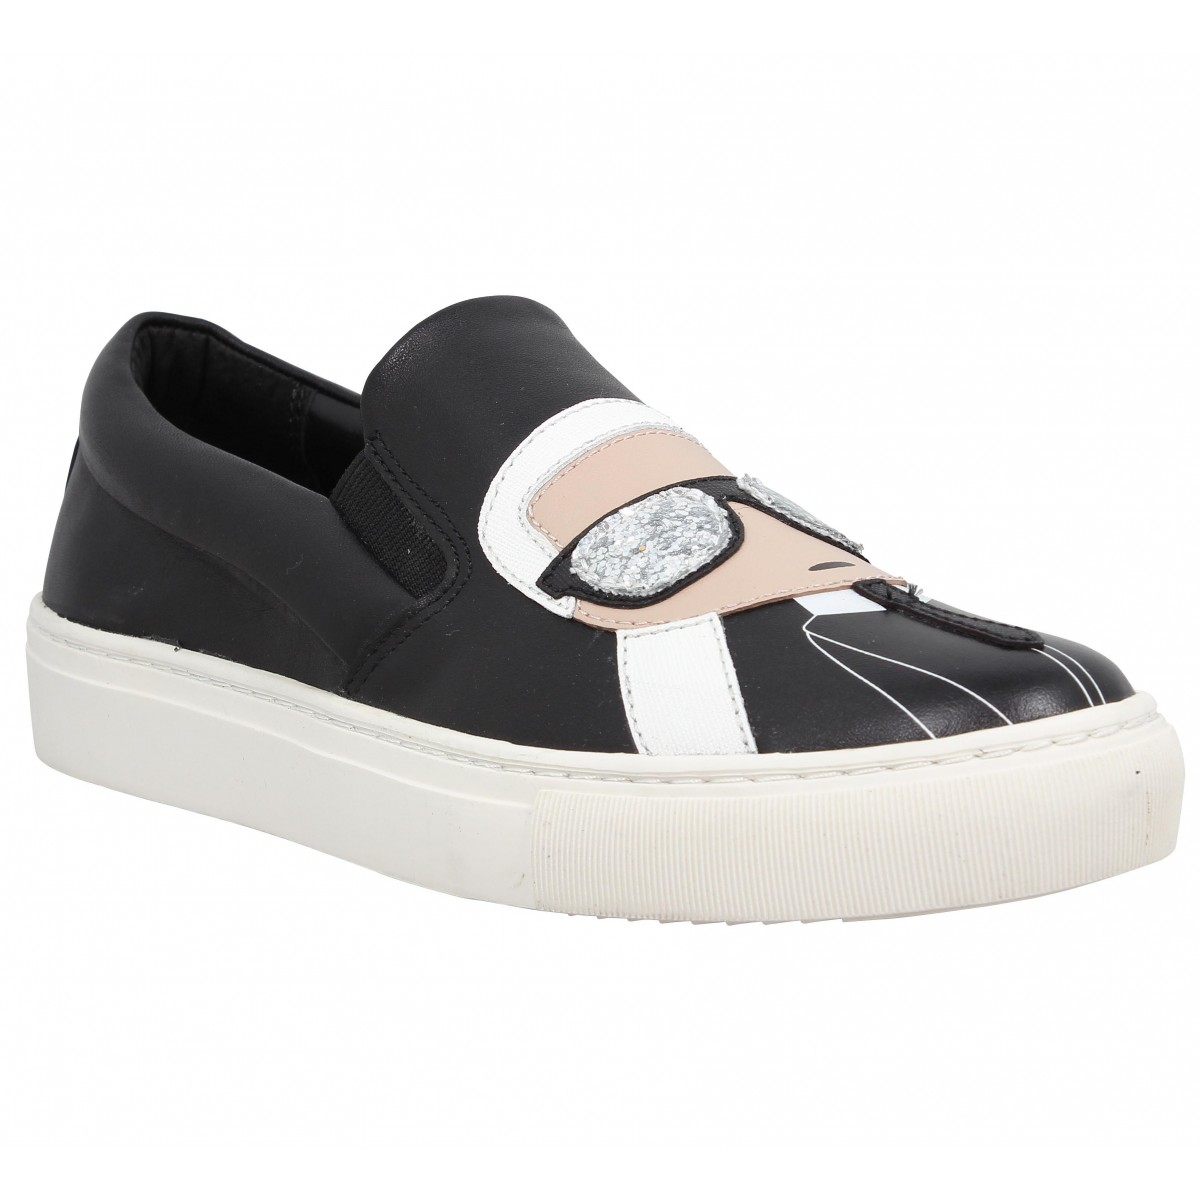 Chaussures - Chaussures À Lacets Karl Lagerfeld AzsNP2W